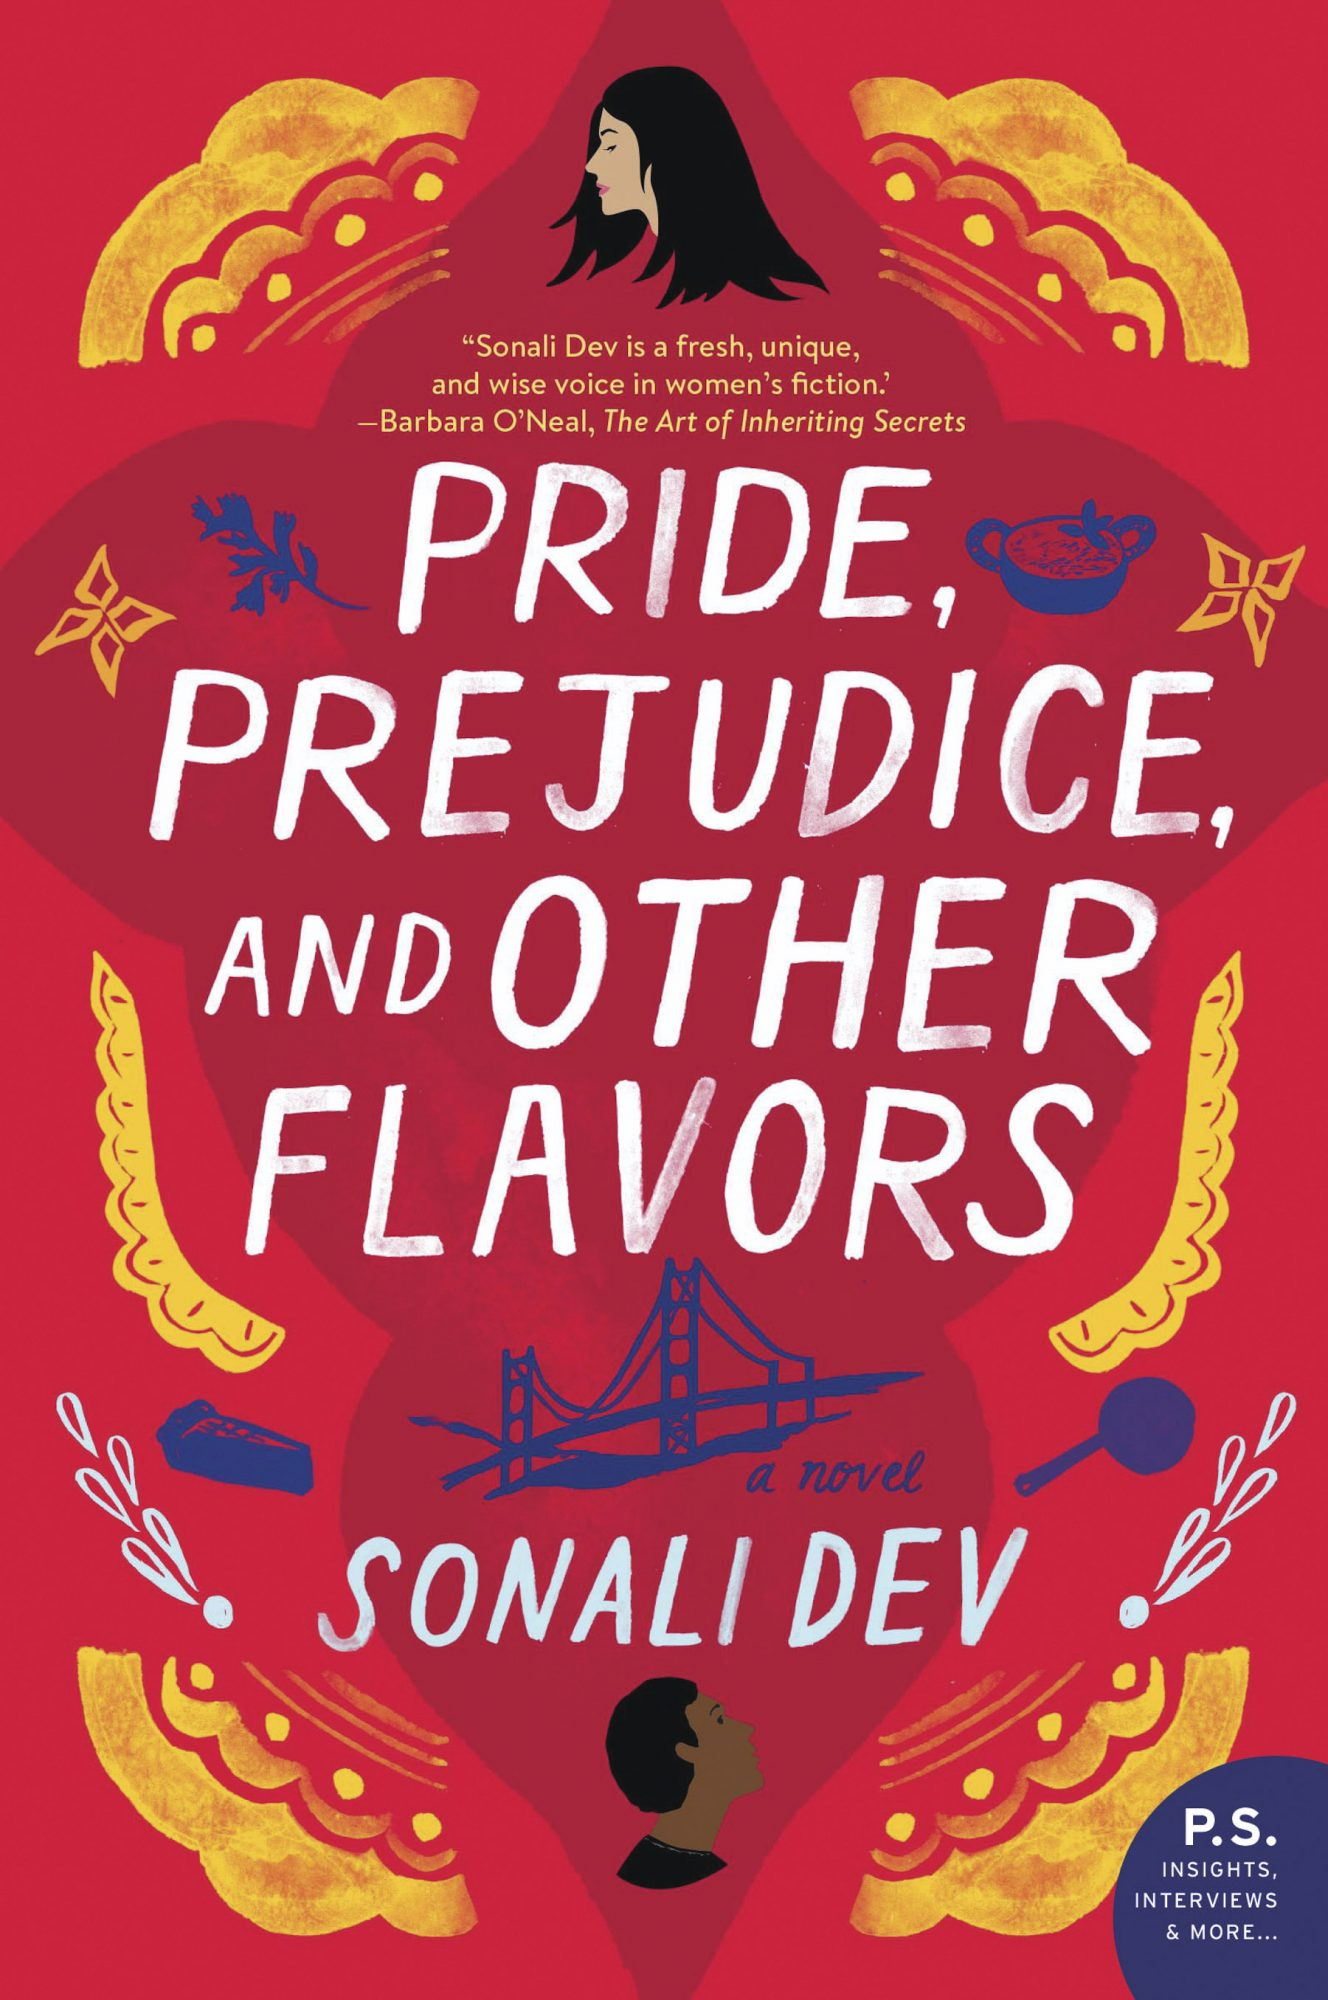 Pride Prejudice and Other Flavors by Sonali Dev CR: HarperCollins